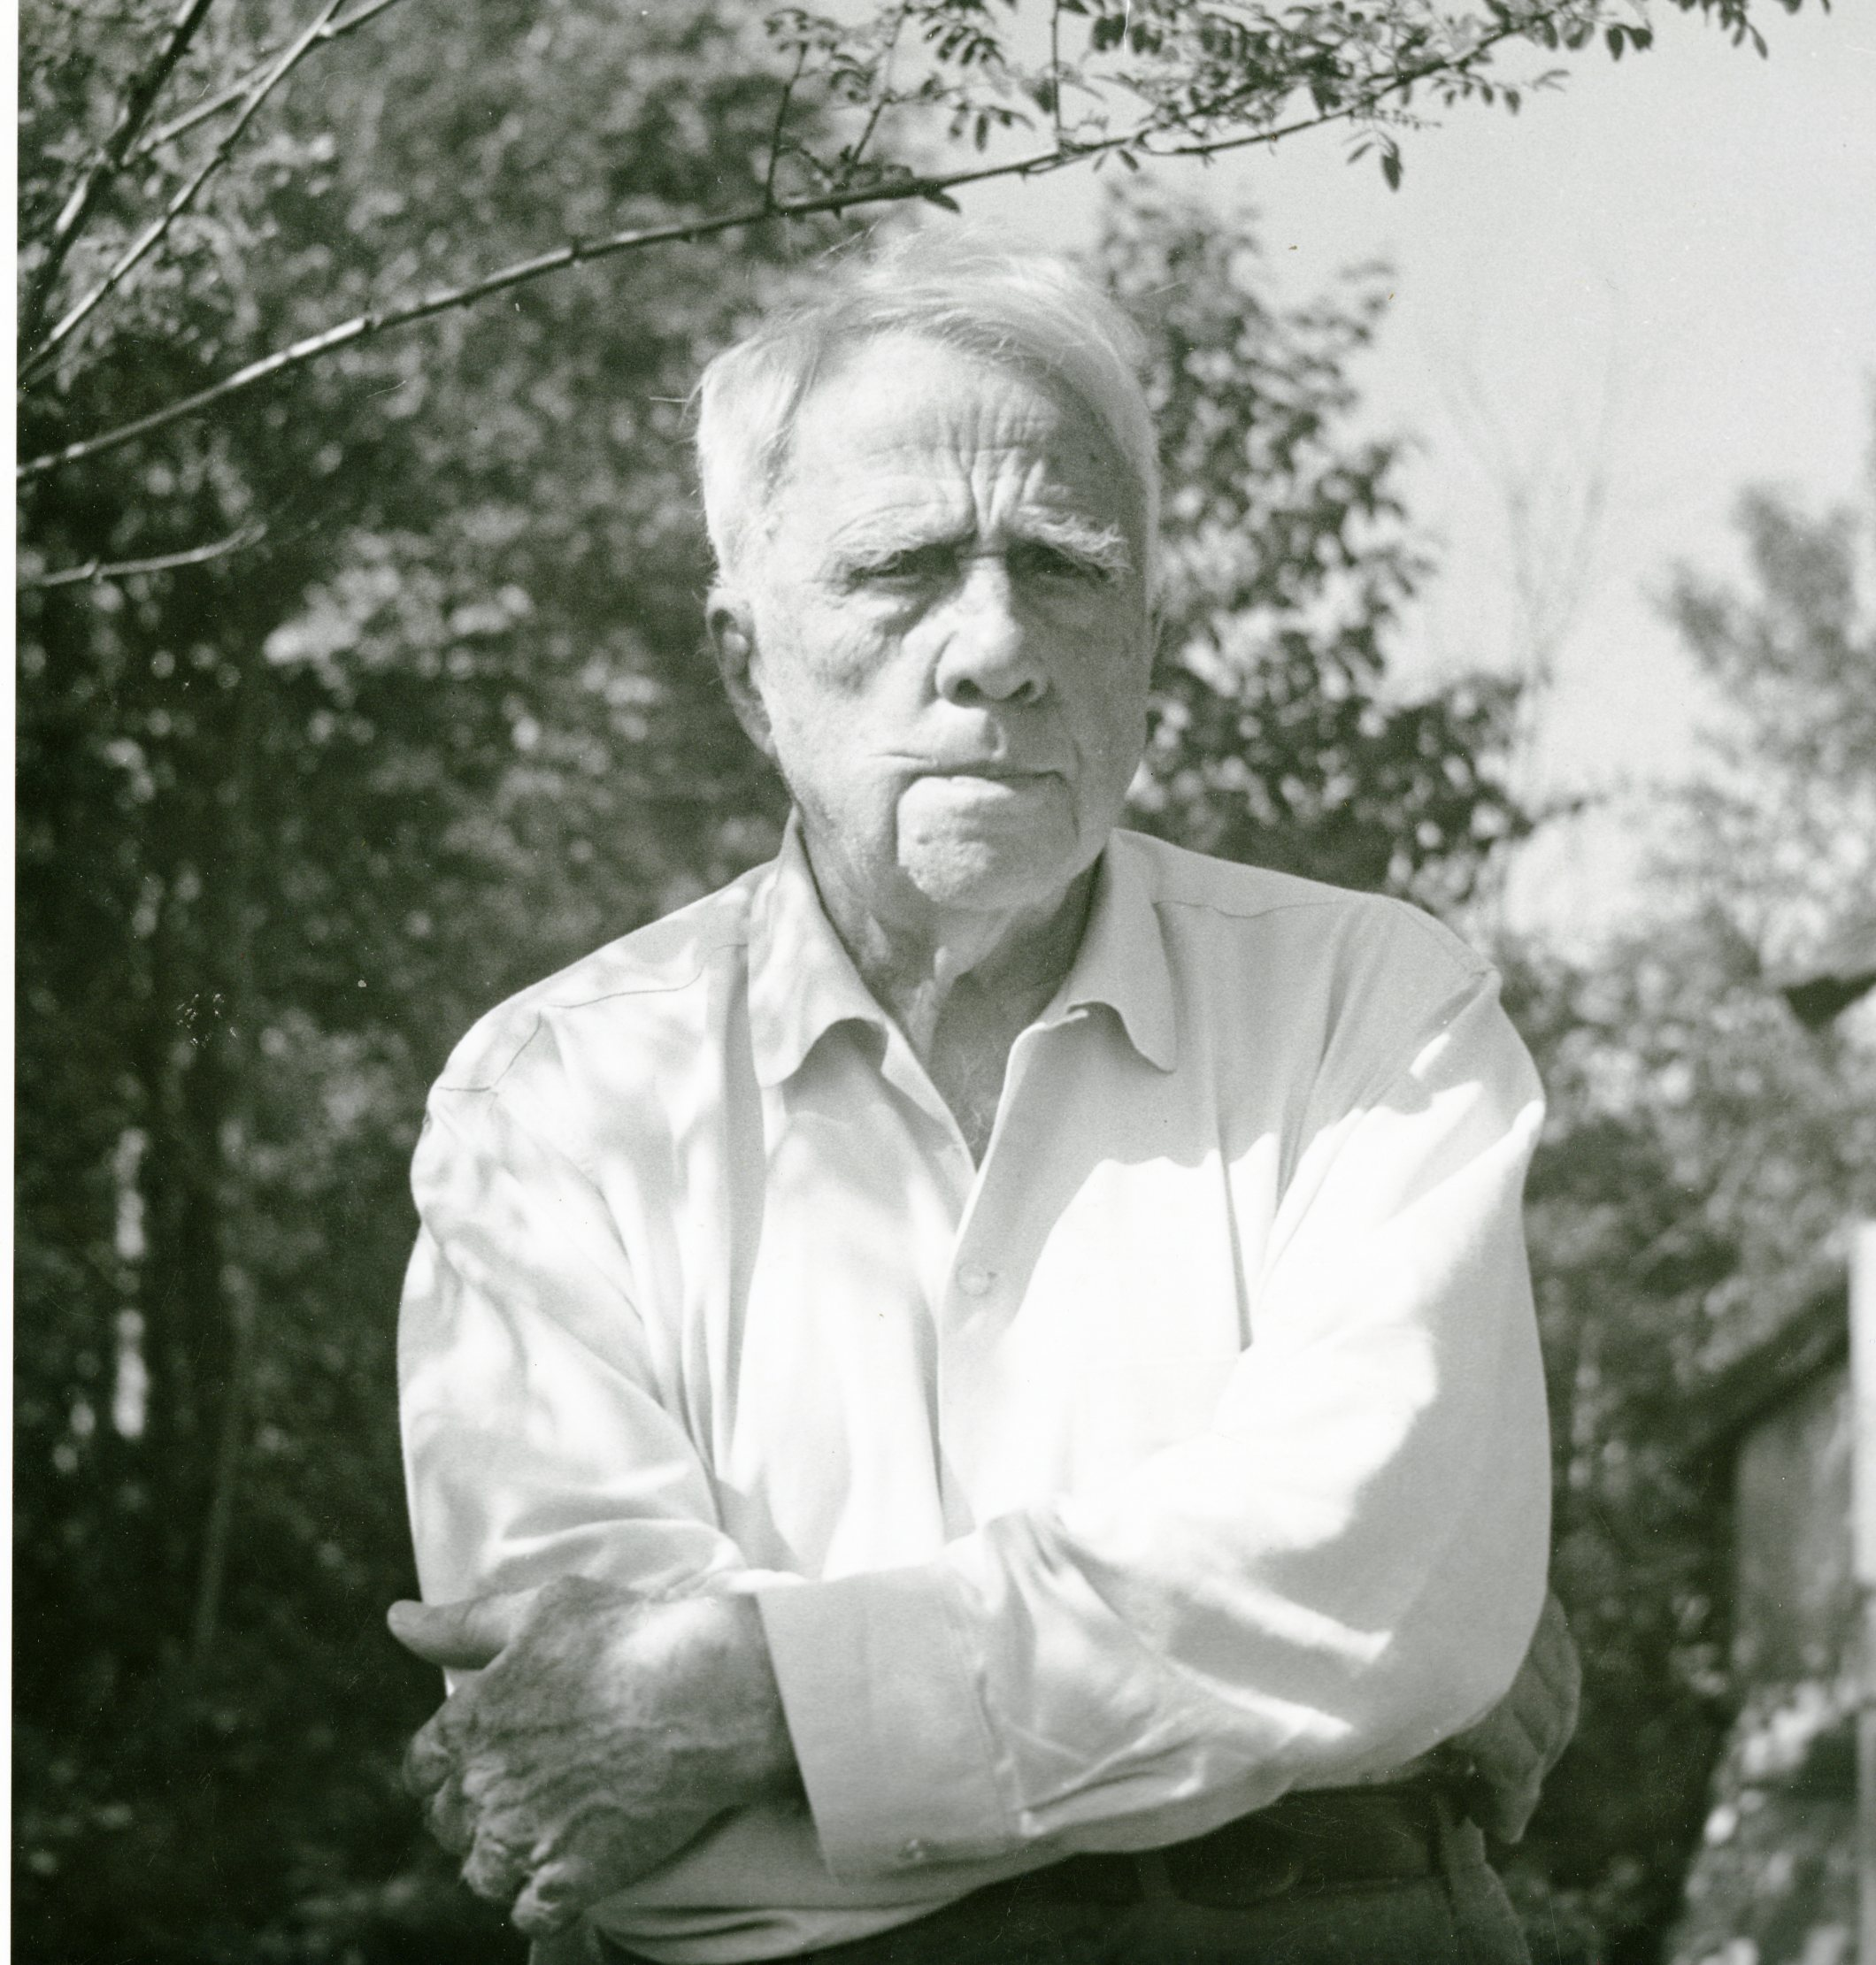 """the literary career of robert frost one of the most popular twentieth century american poets Hailing from chile, pablo neruda was one of the great love poets of the twentieth century """"if you forget me"""" hauntingly depicts love as it dies and is reborn 6."""